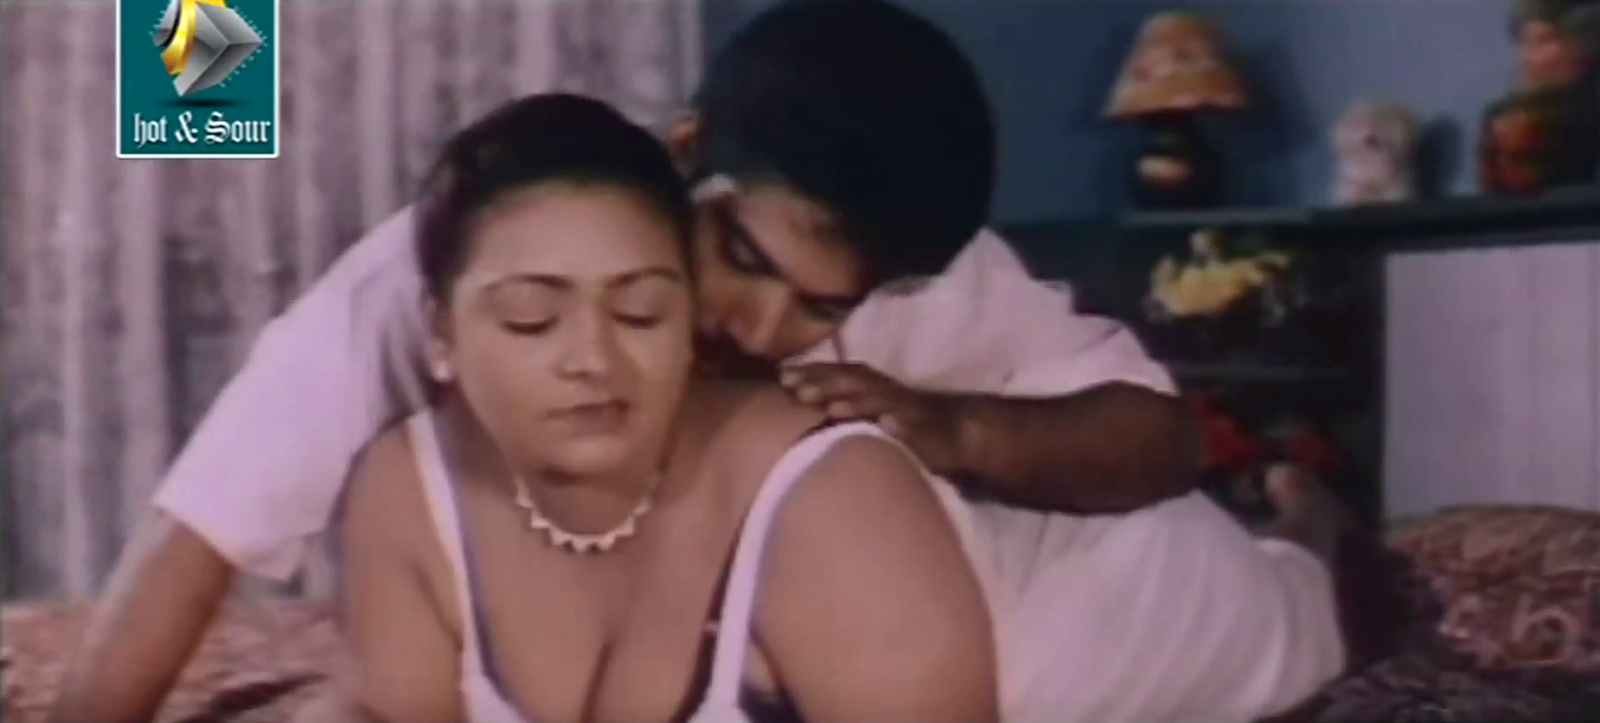 mallu aunty boobs naked